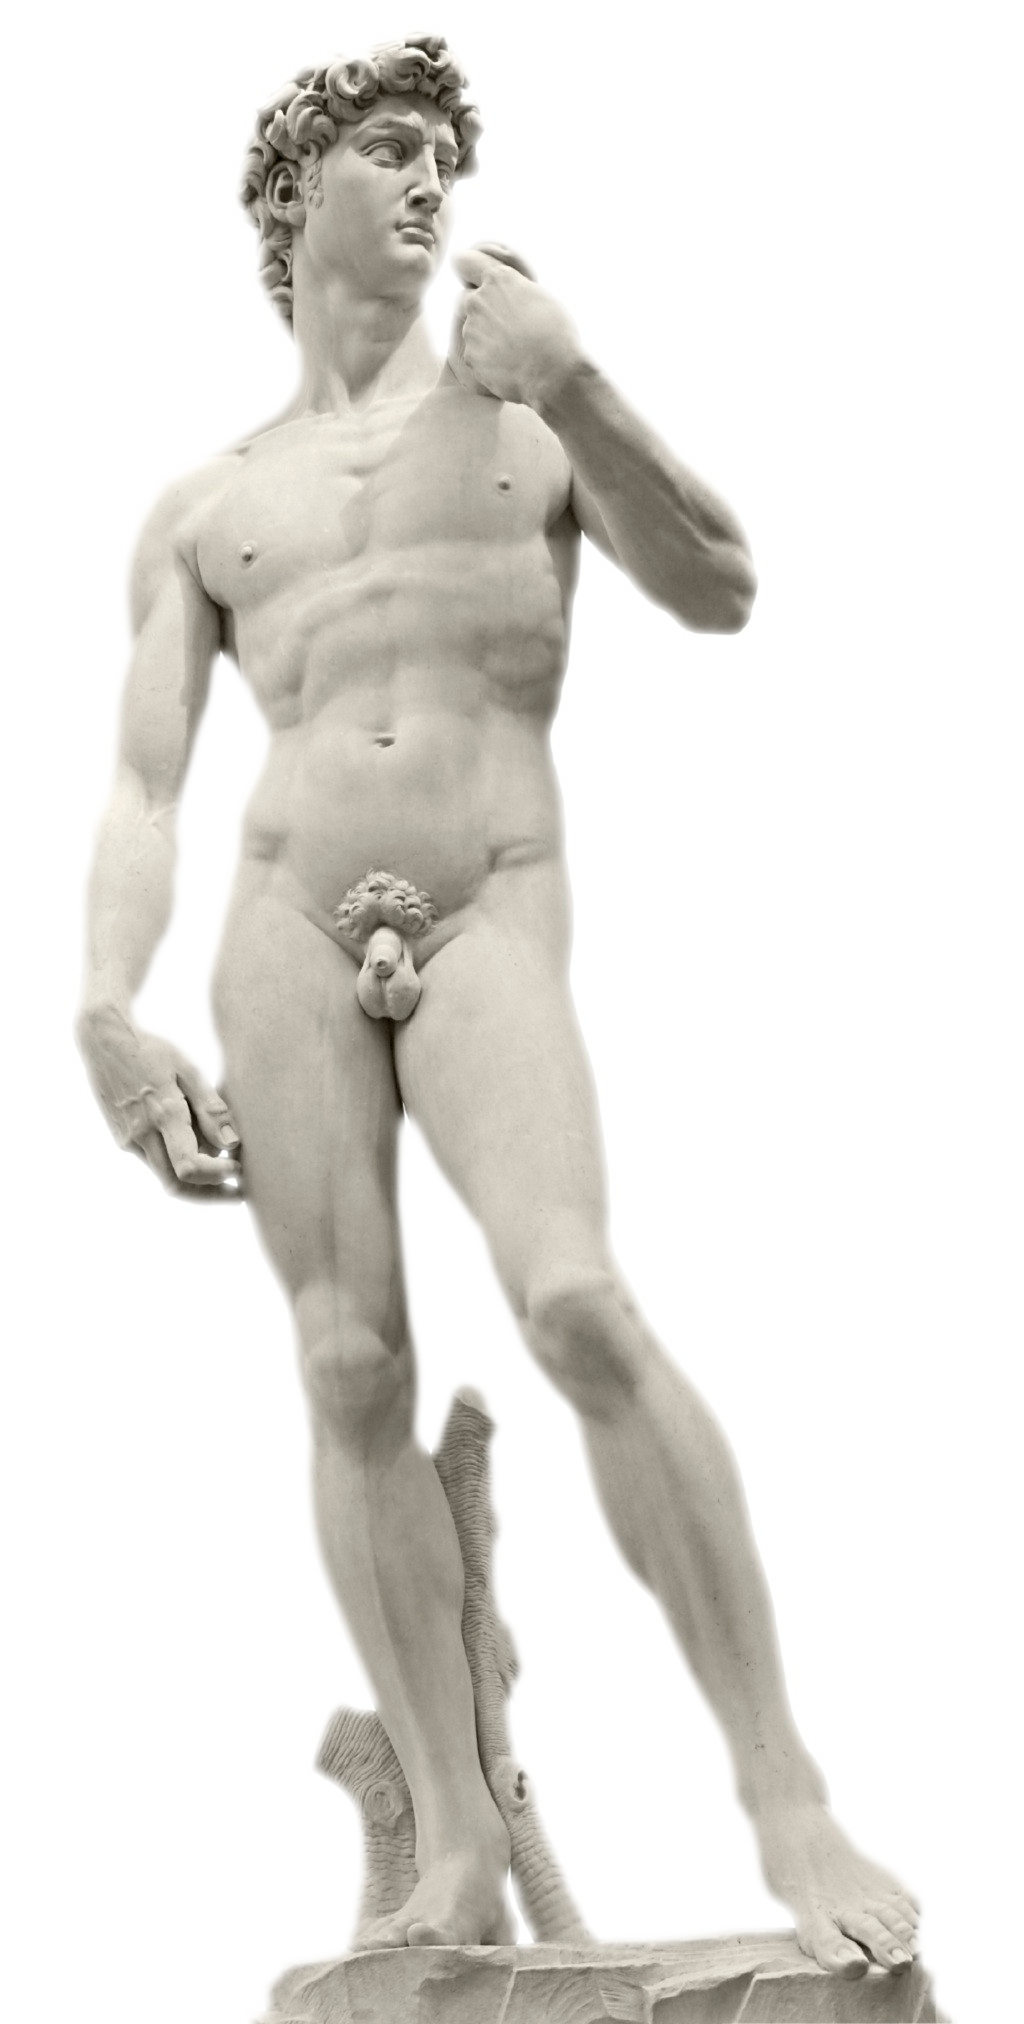 David statue png. Pol politically incorrect thread